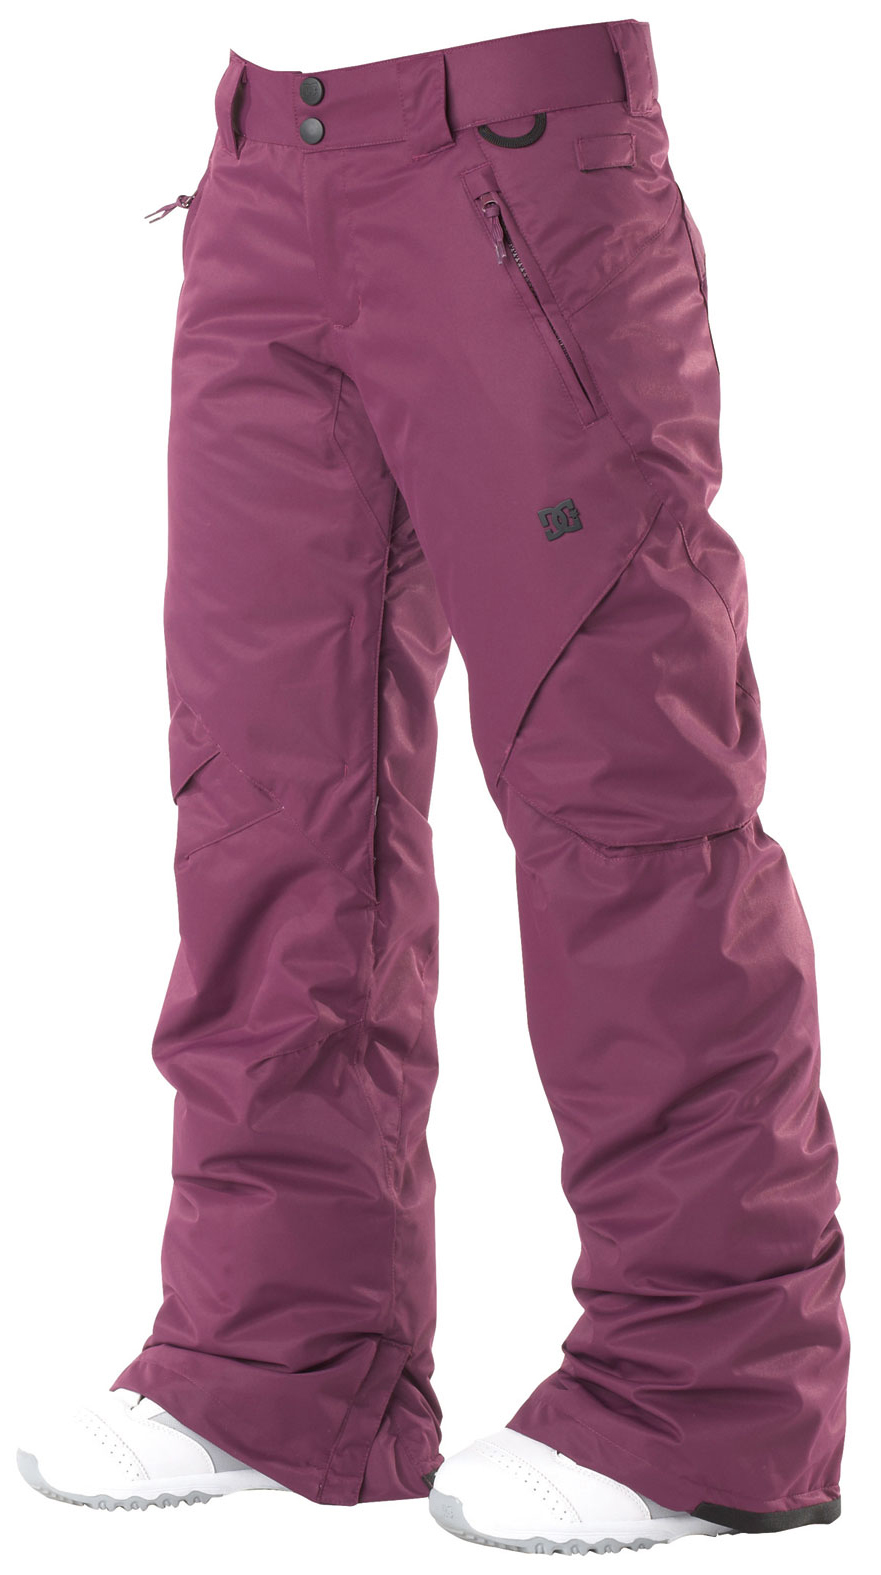 Snowboard With subtle cargo pockets, clean yet modern design, the ace pant is filled with all of dc's standard features. The added insulation will keep you warm in the coldest of climates. Available in both standard and tailored fits.Key Features of the DC Ace Snowboard Pants: 5,000mm waterproof 5,000g breathability Fit: standard 100% polyester micro twill midweight Critically taped seams 40g polyinsulation Taffeta lining Mesh lined venting Shant control Boot gaiter Snapped hem boot gusset Lift pass hook - $83.95